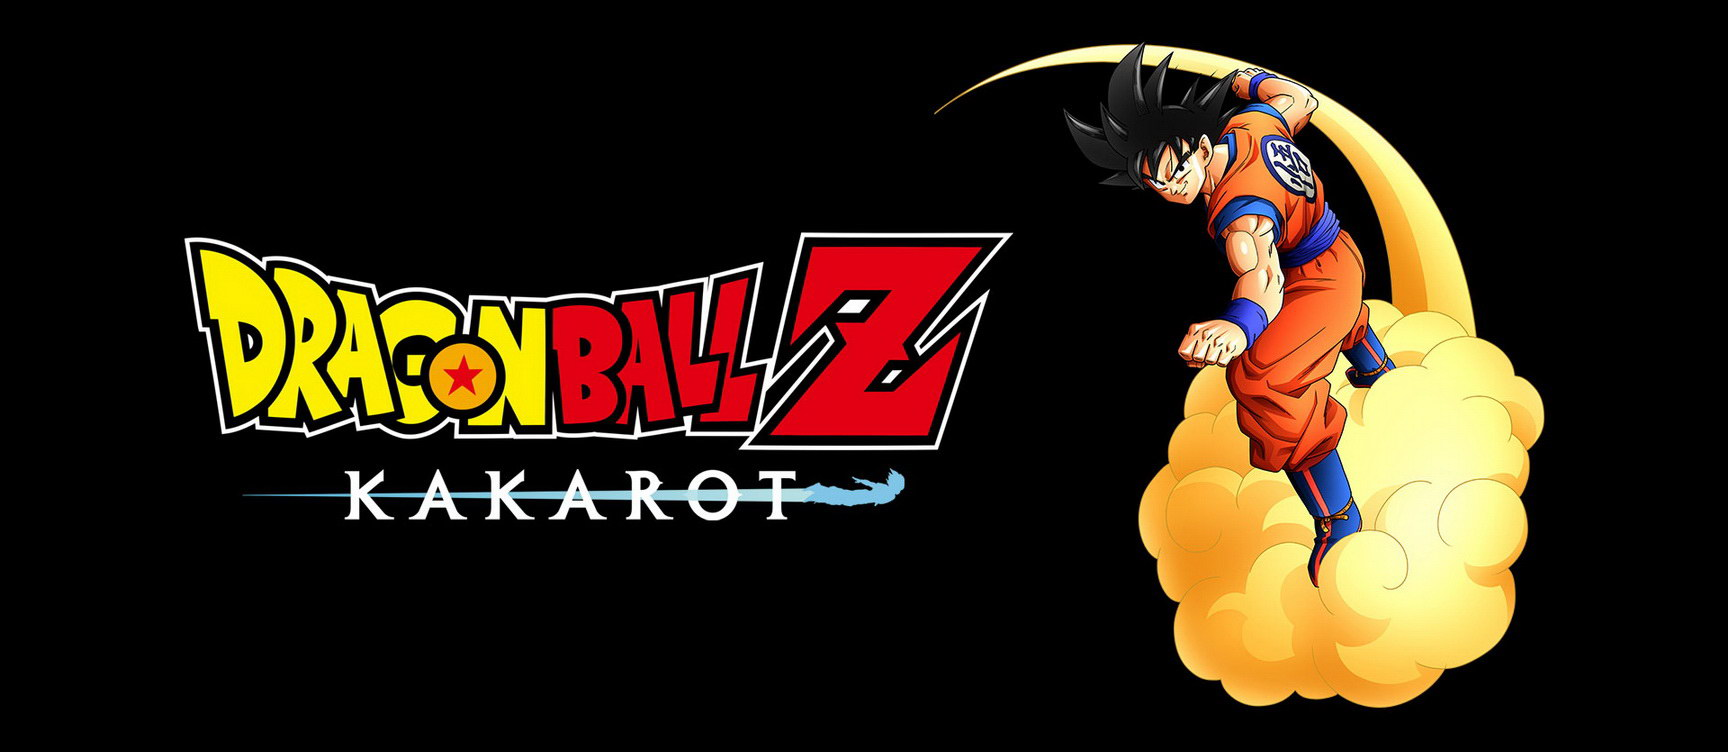 DBZ Kakarot - Preview - E3 2019